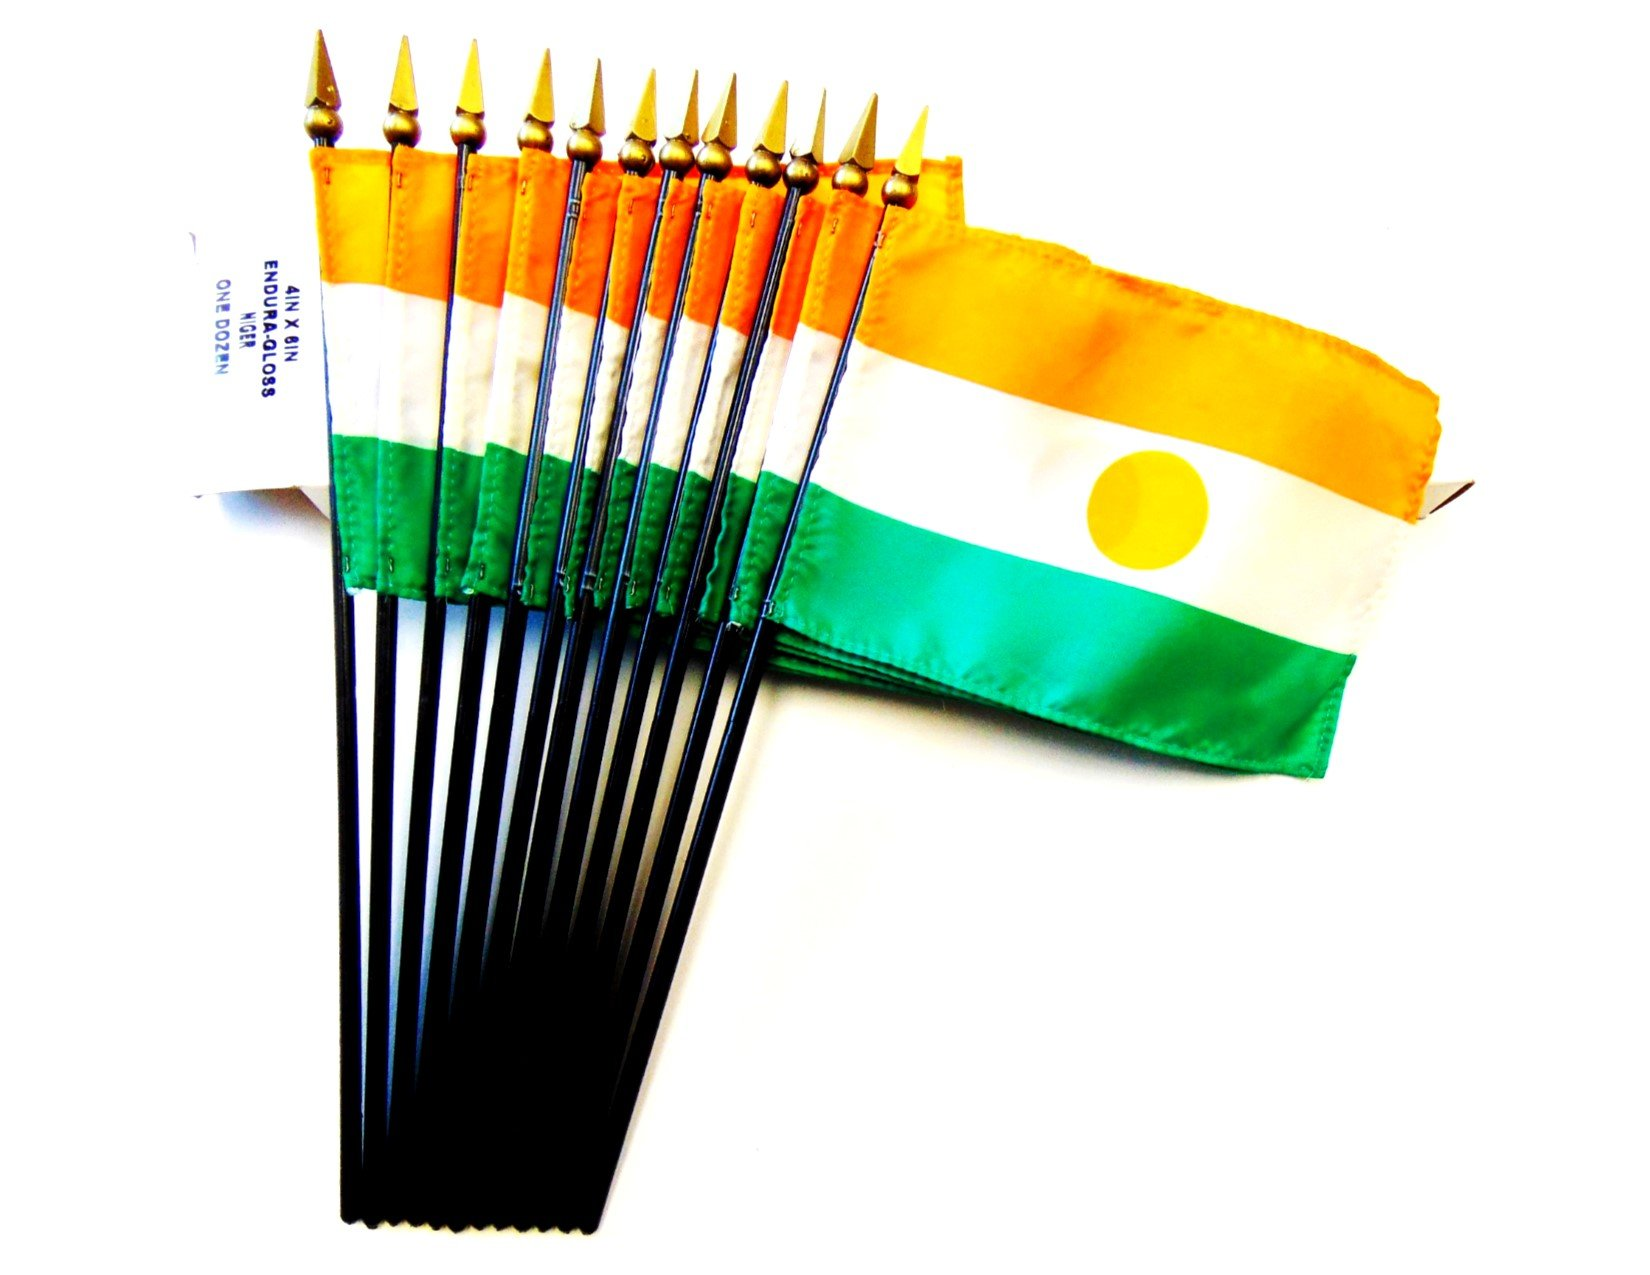 MADE IN USA!! Box of 12 Niger 4''x6'' Miniature Desk & Table Flags; 12 American Made Small Mini Niger Flags in a Custom Made Cardboard Box Specifically Made for These Flags